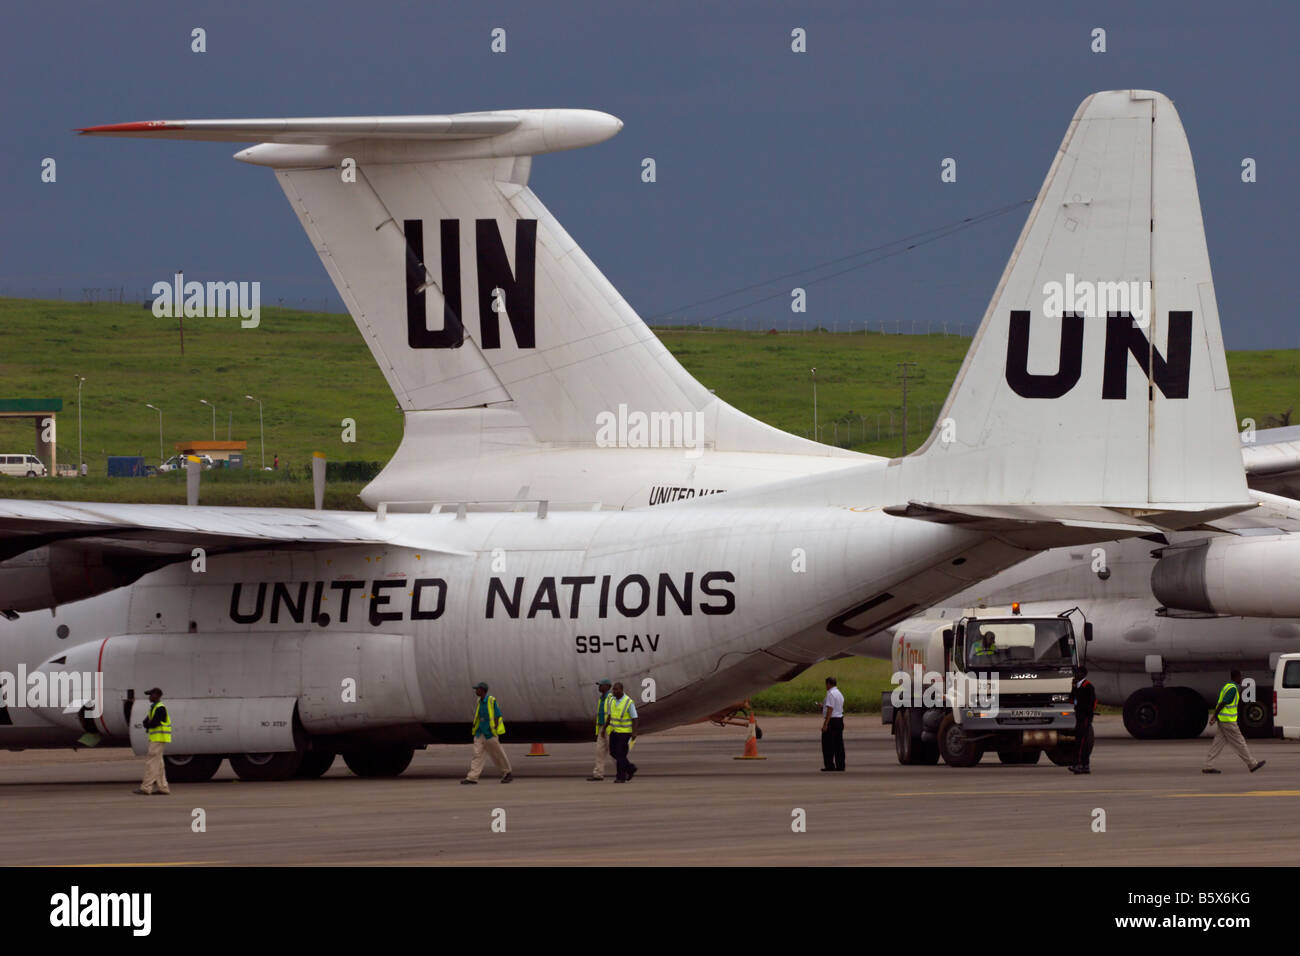 UN united nations aircraft hercules turboprop africa - Stock Image